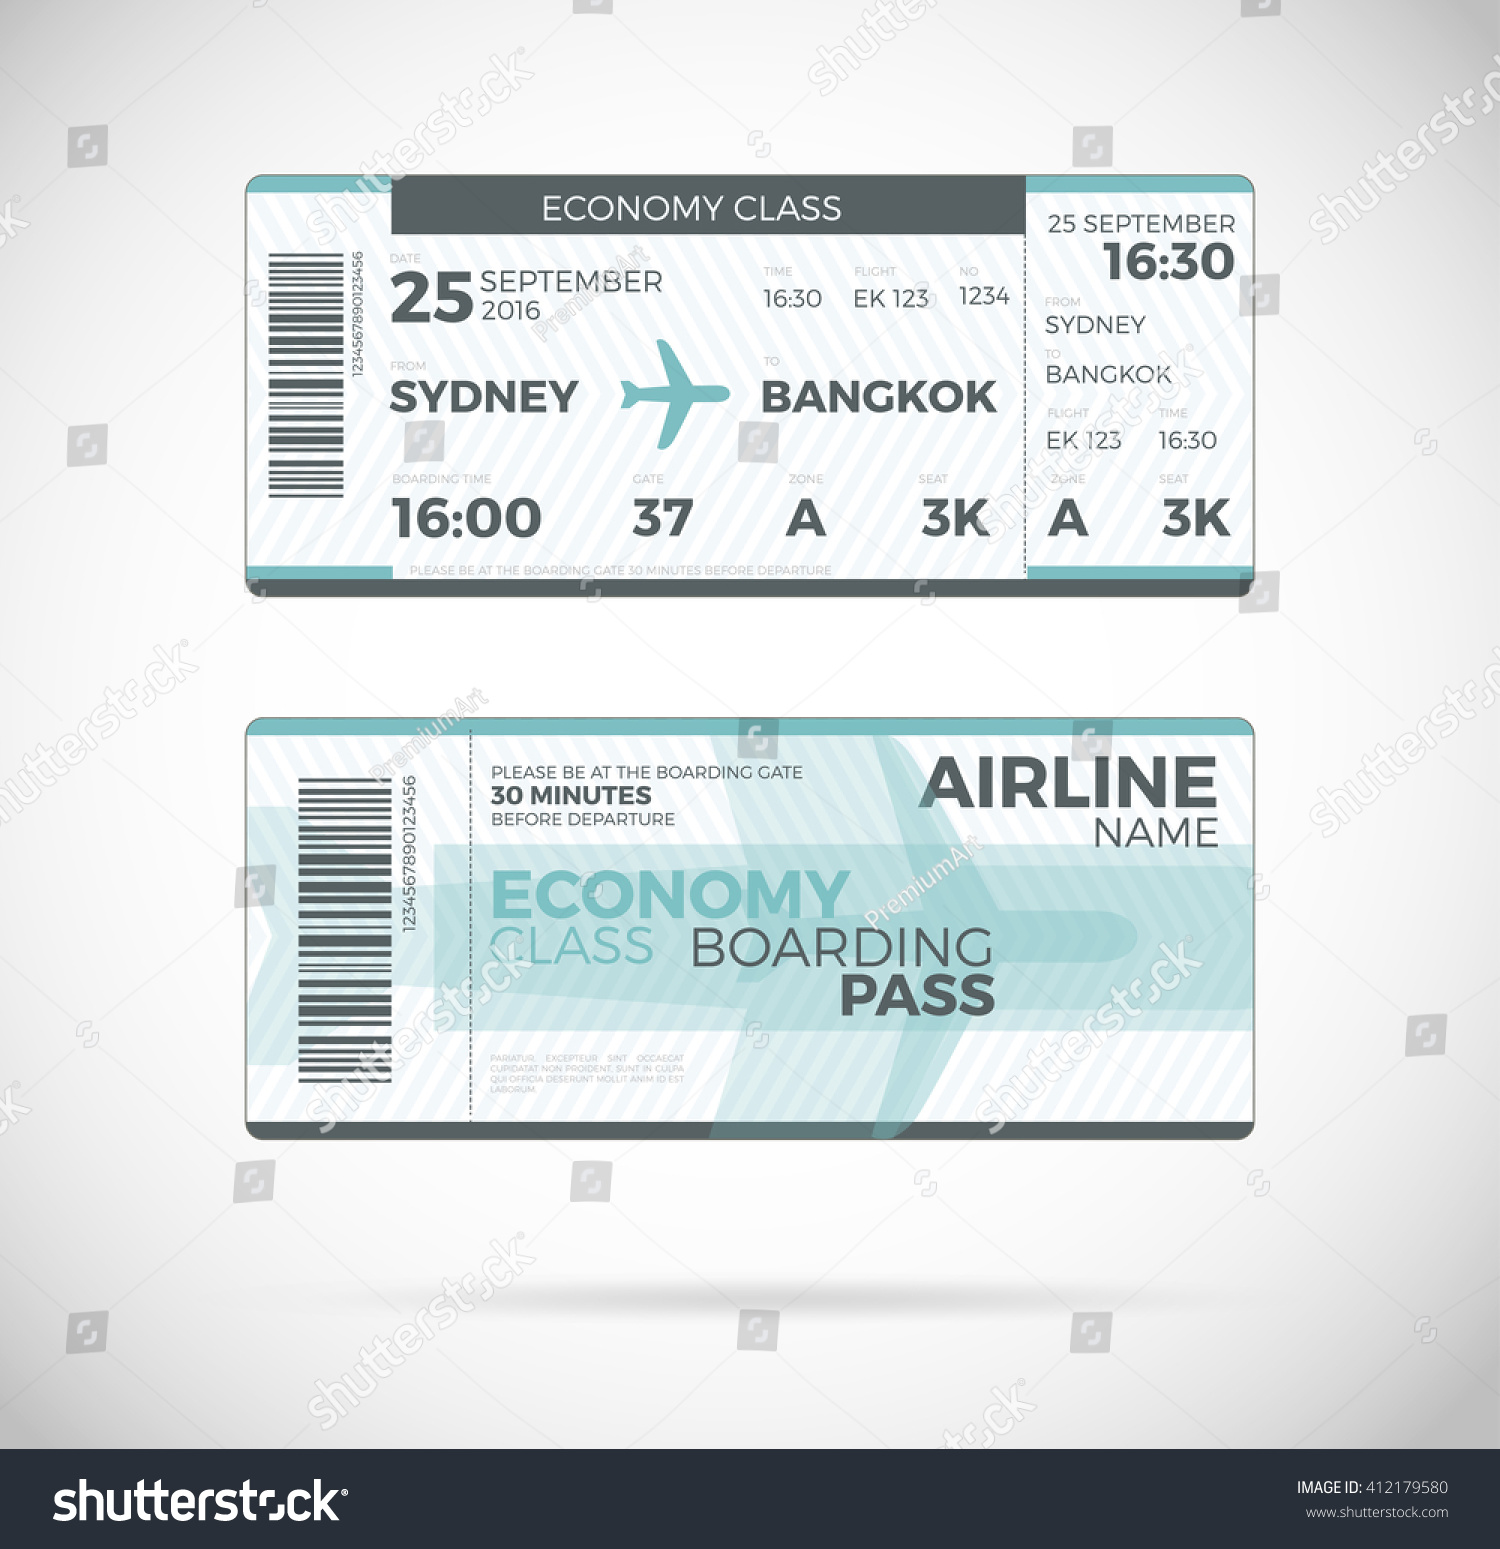 Airline boarding pass economy class ticket stock vector for Fake boarding pass template